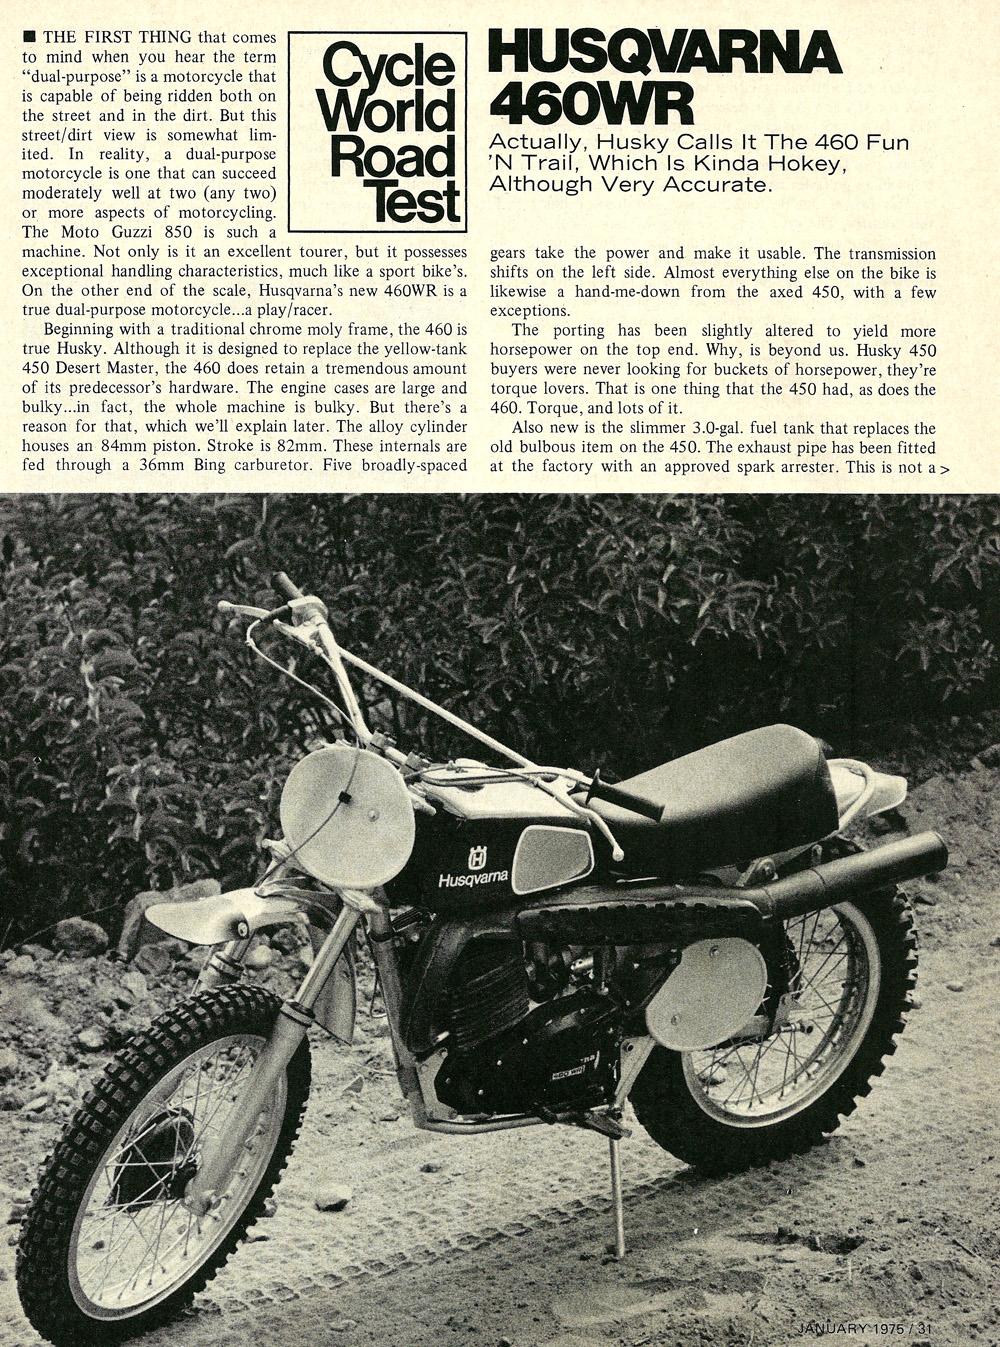 1975 Husqvarna 460WR road test 01.jpg